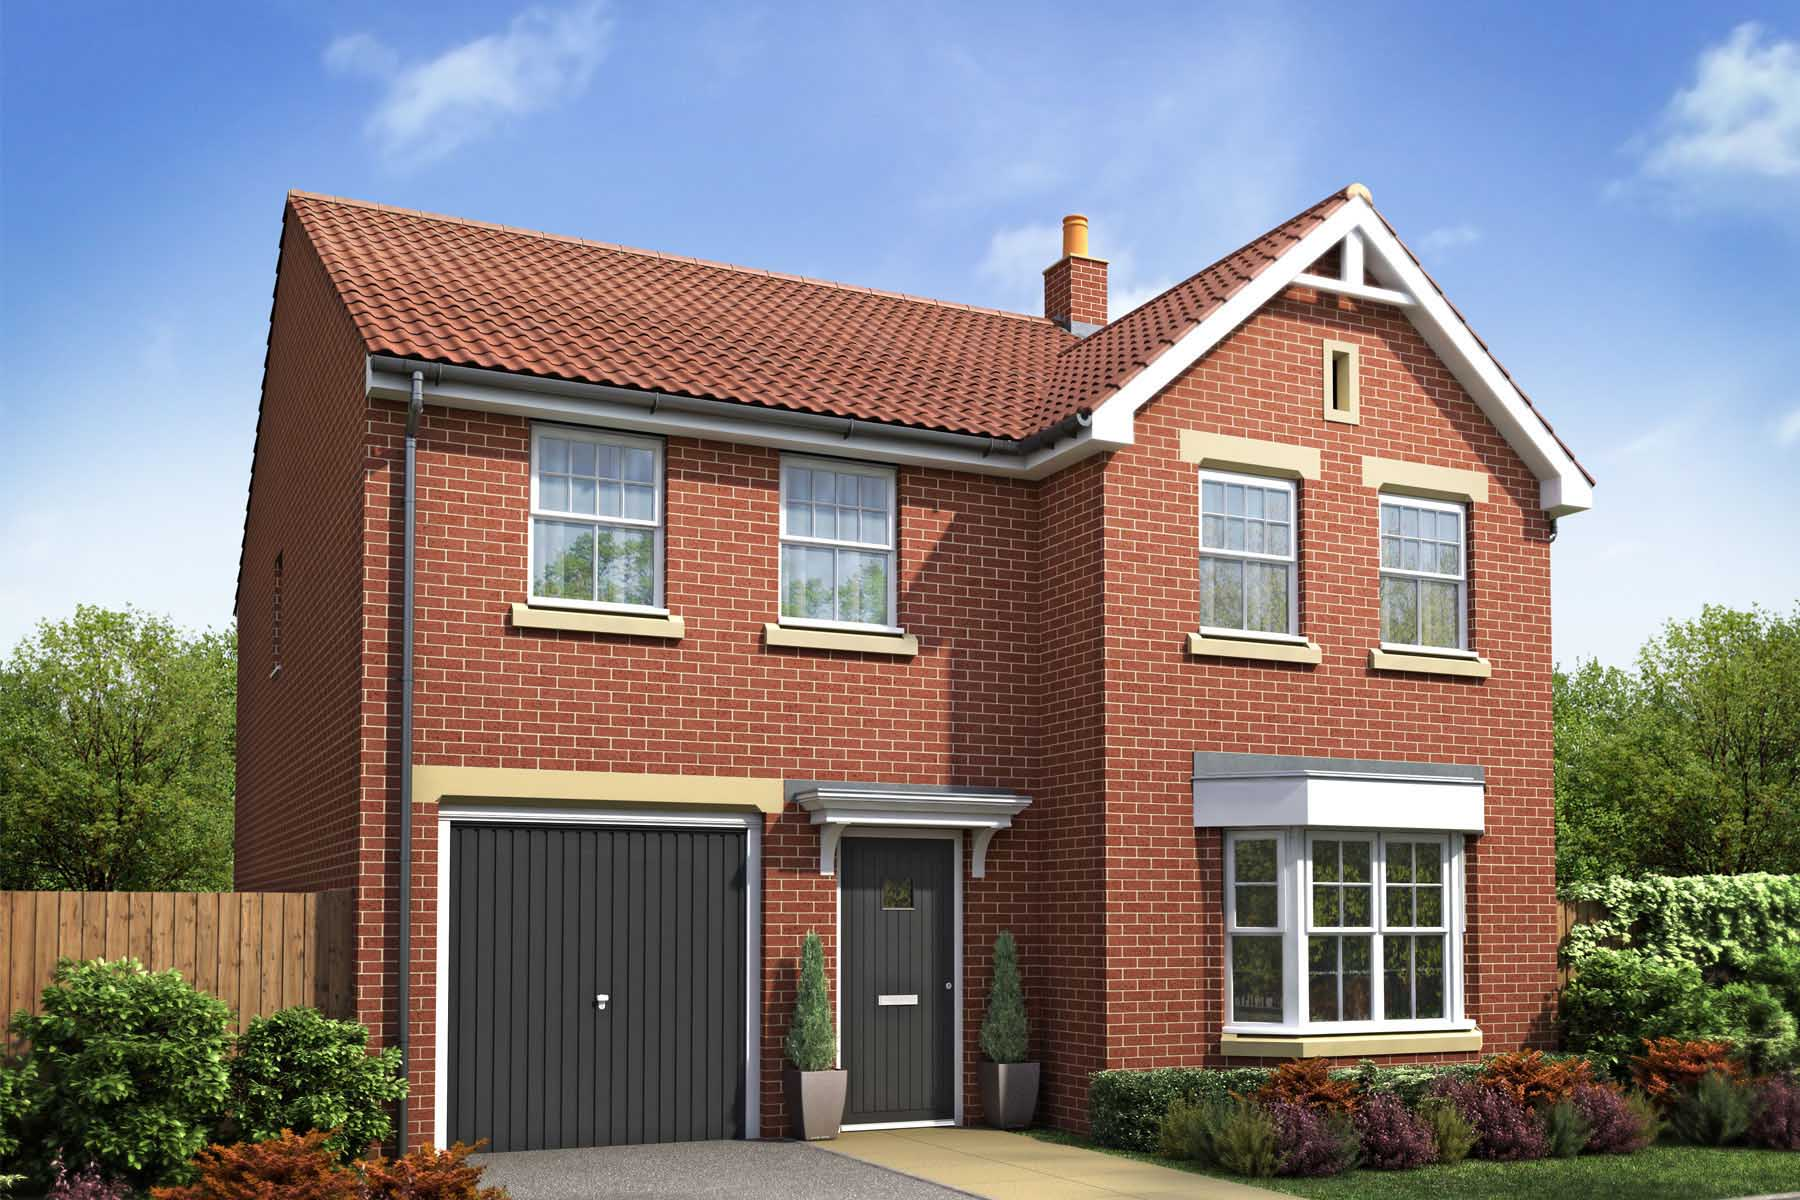 New homes in Tyne and Wear